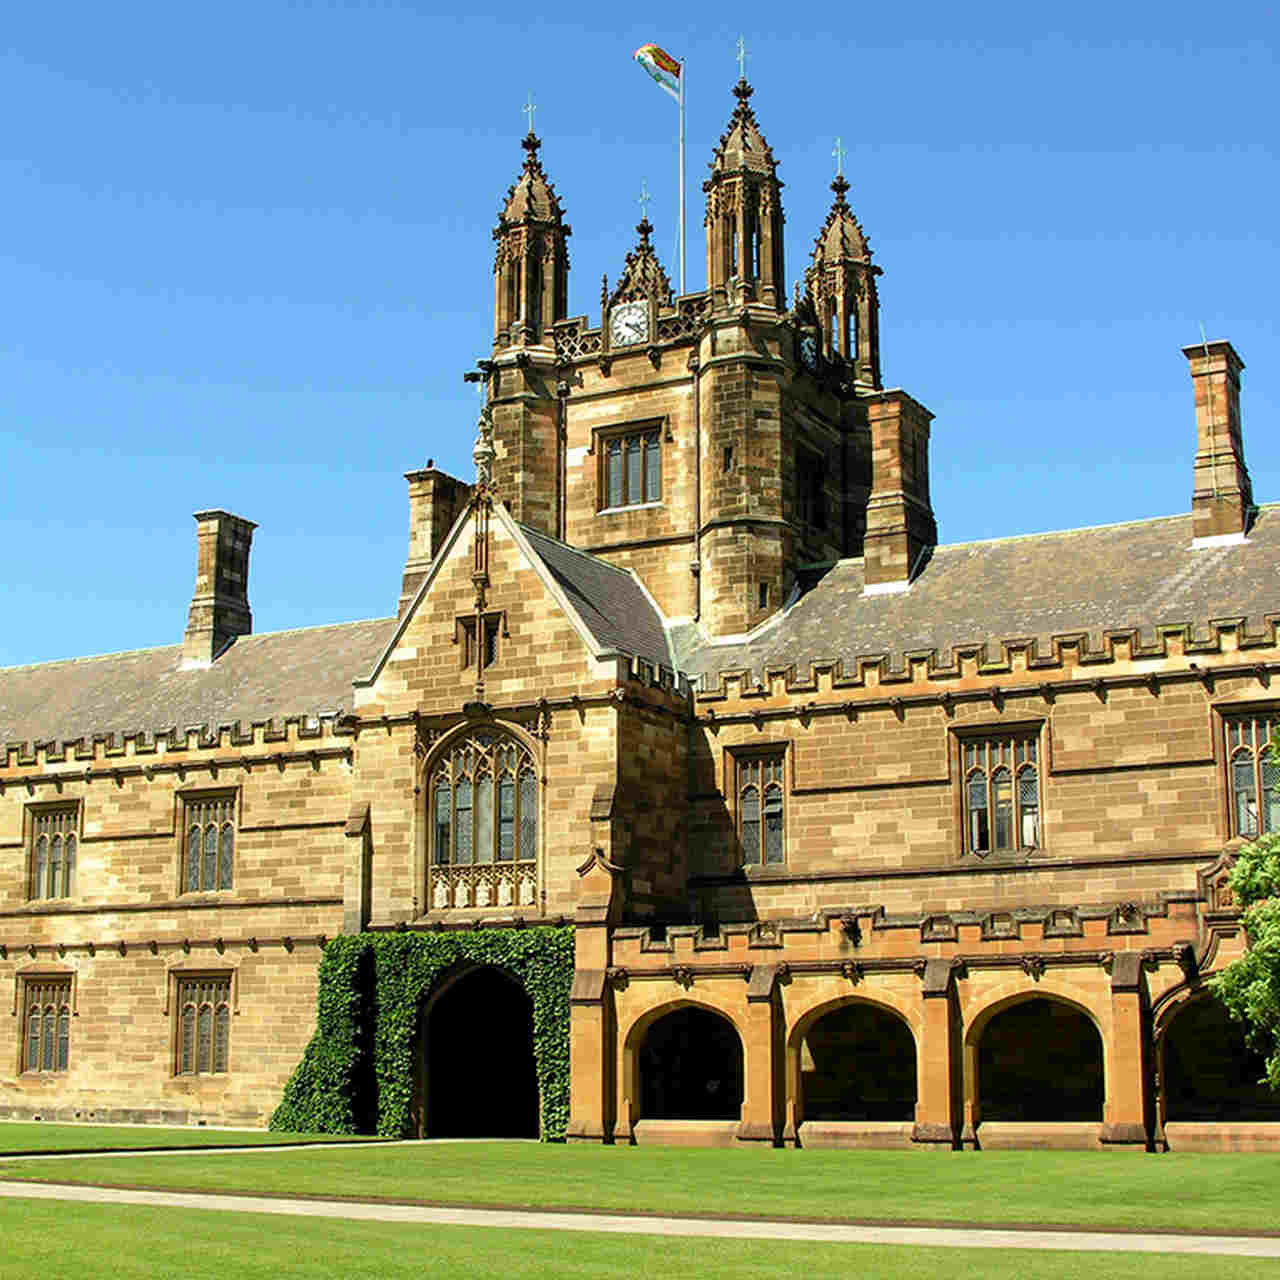 Landmark, Building, Architecture, Estate, Medieval architecture, Stately home, Mansion, College, Sky, Château, Palace, Historic house, Manor house, Listed building, Grass, Classical architecture, Almshouse, Facade, University, House, University of Sydney, The University of Sydney, International House, The University of Sydney, University, The University of Sydney Business School, The University of Sydney